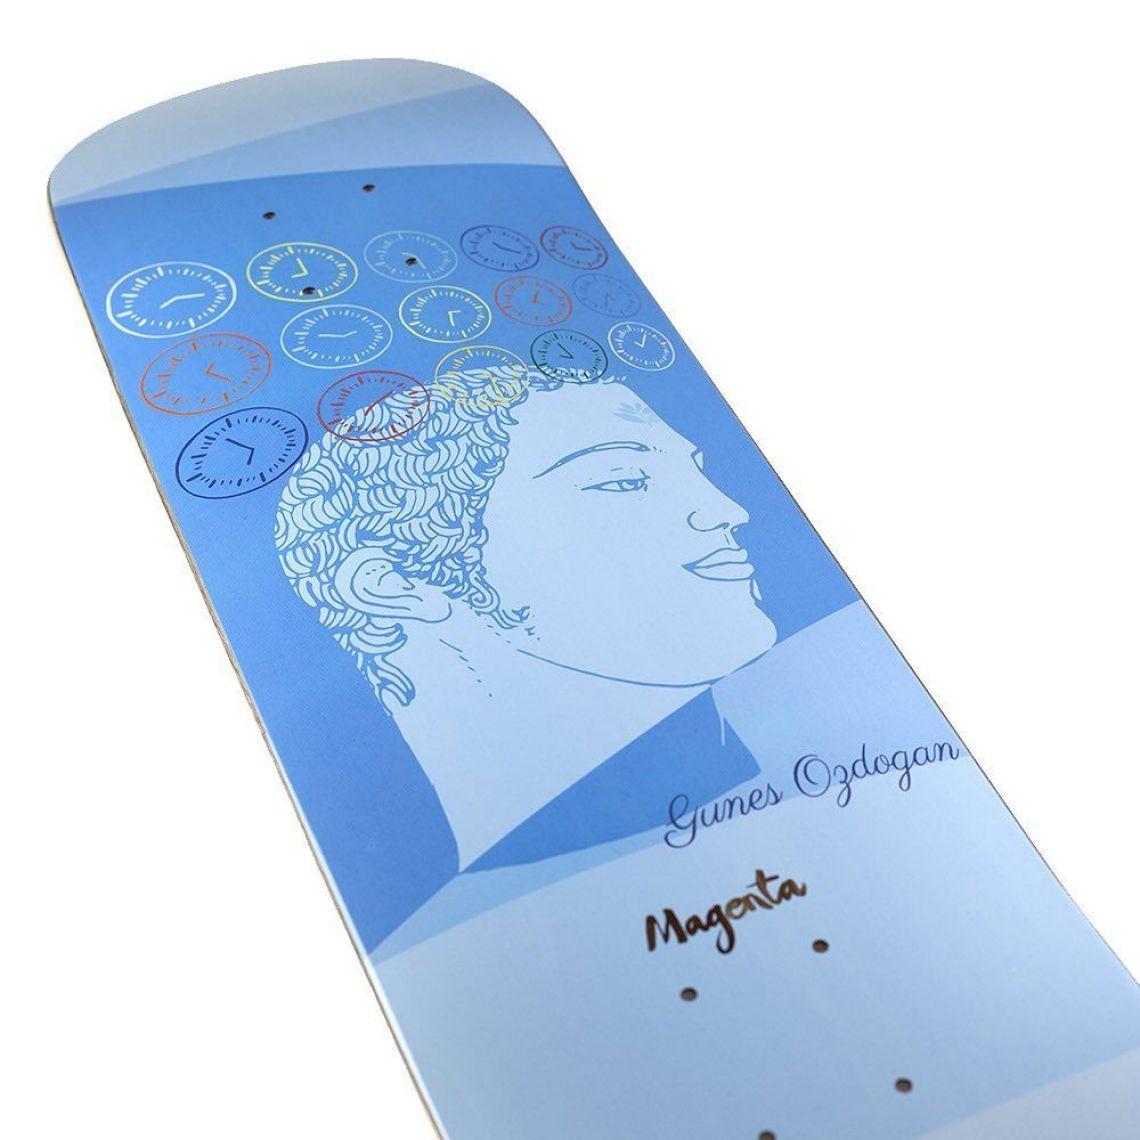 Sleep Board Series By Soy Panday For Magenta Skateboards